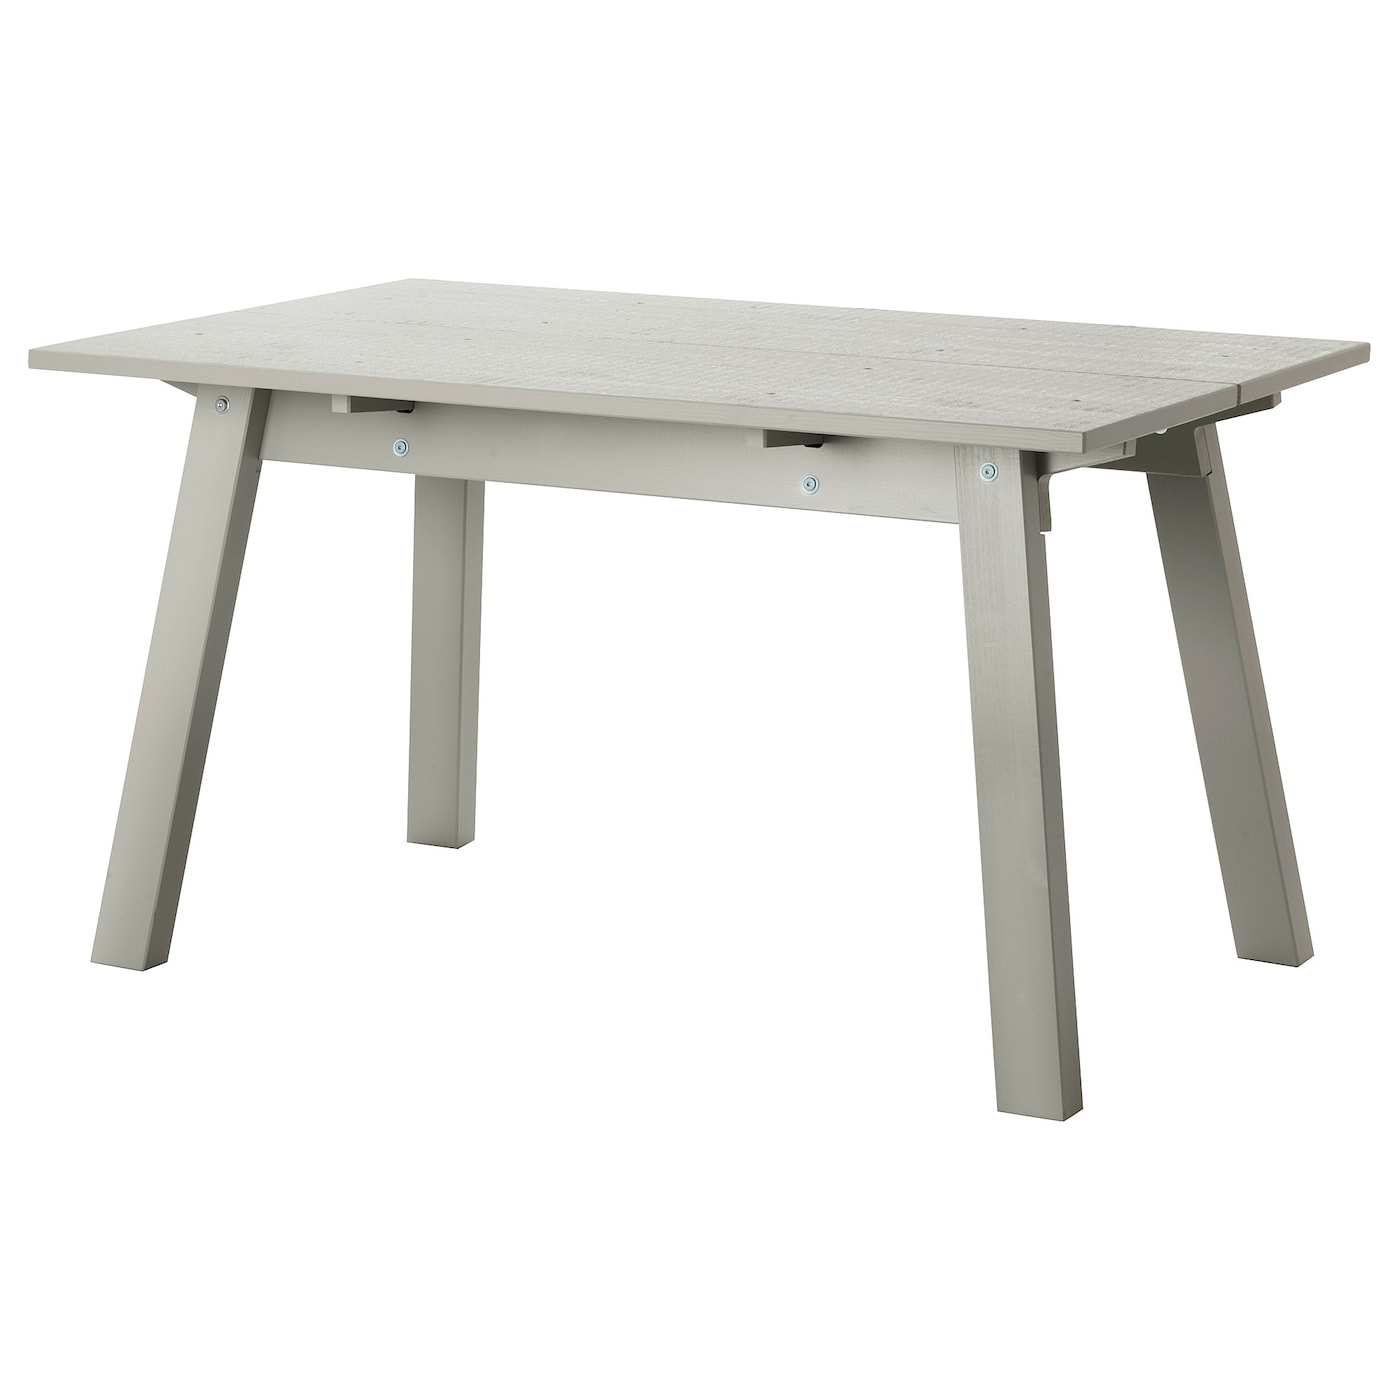 IKEA INDUSTRIELL table